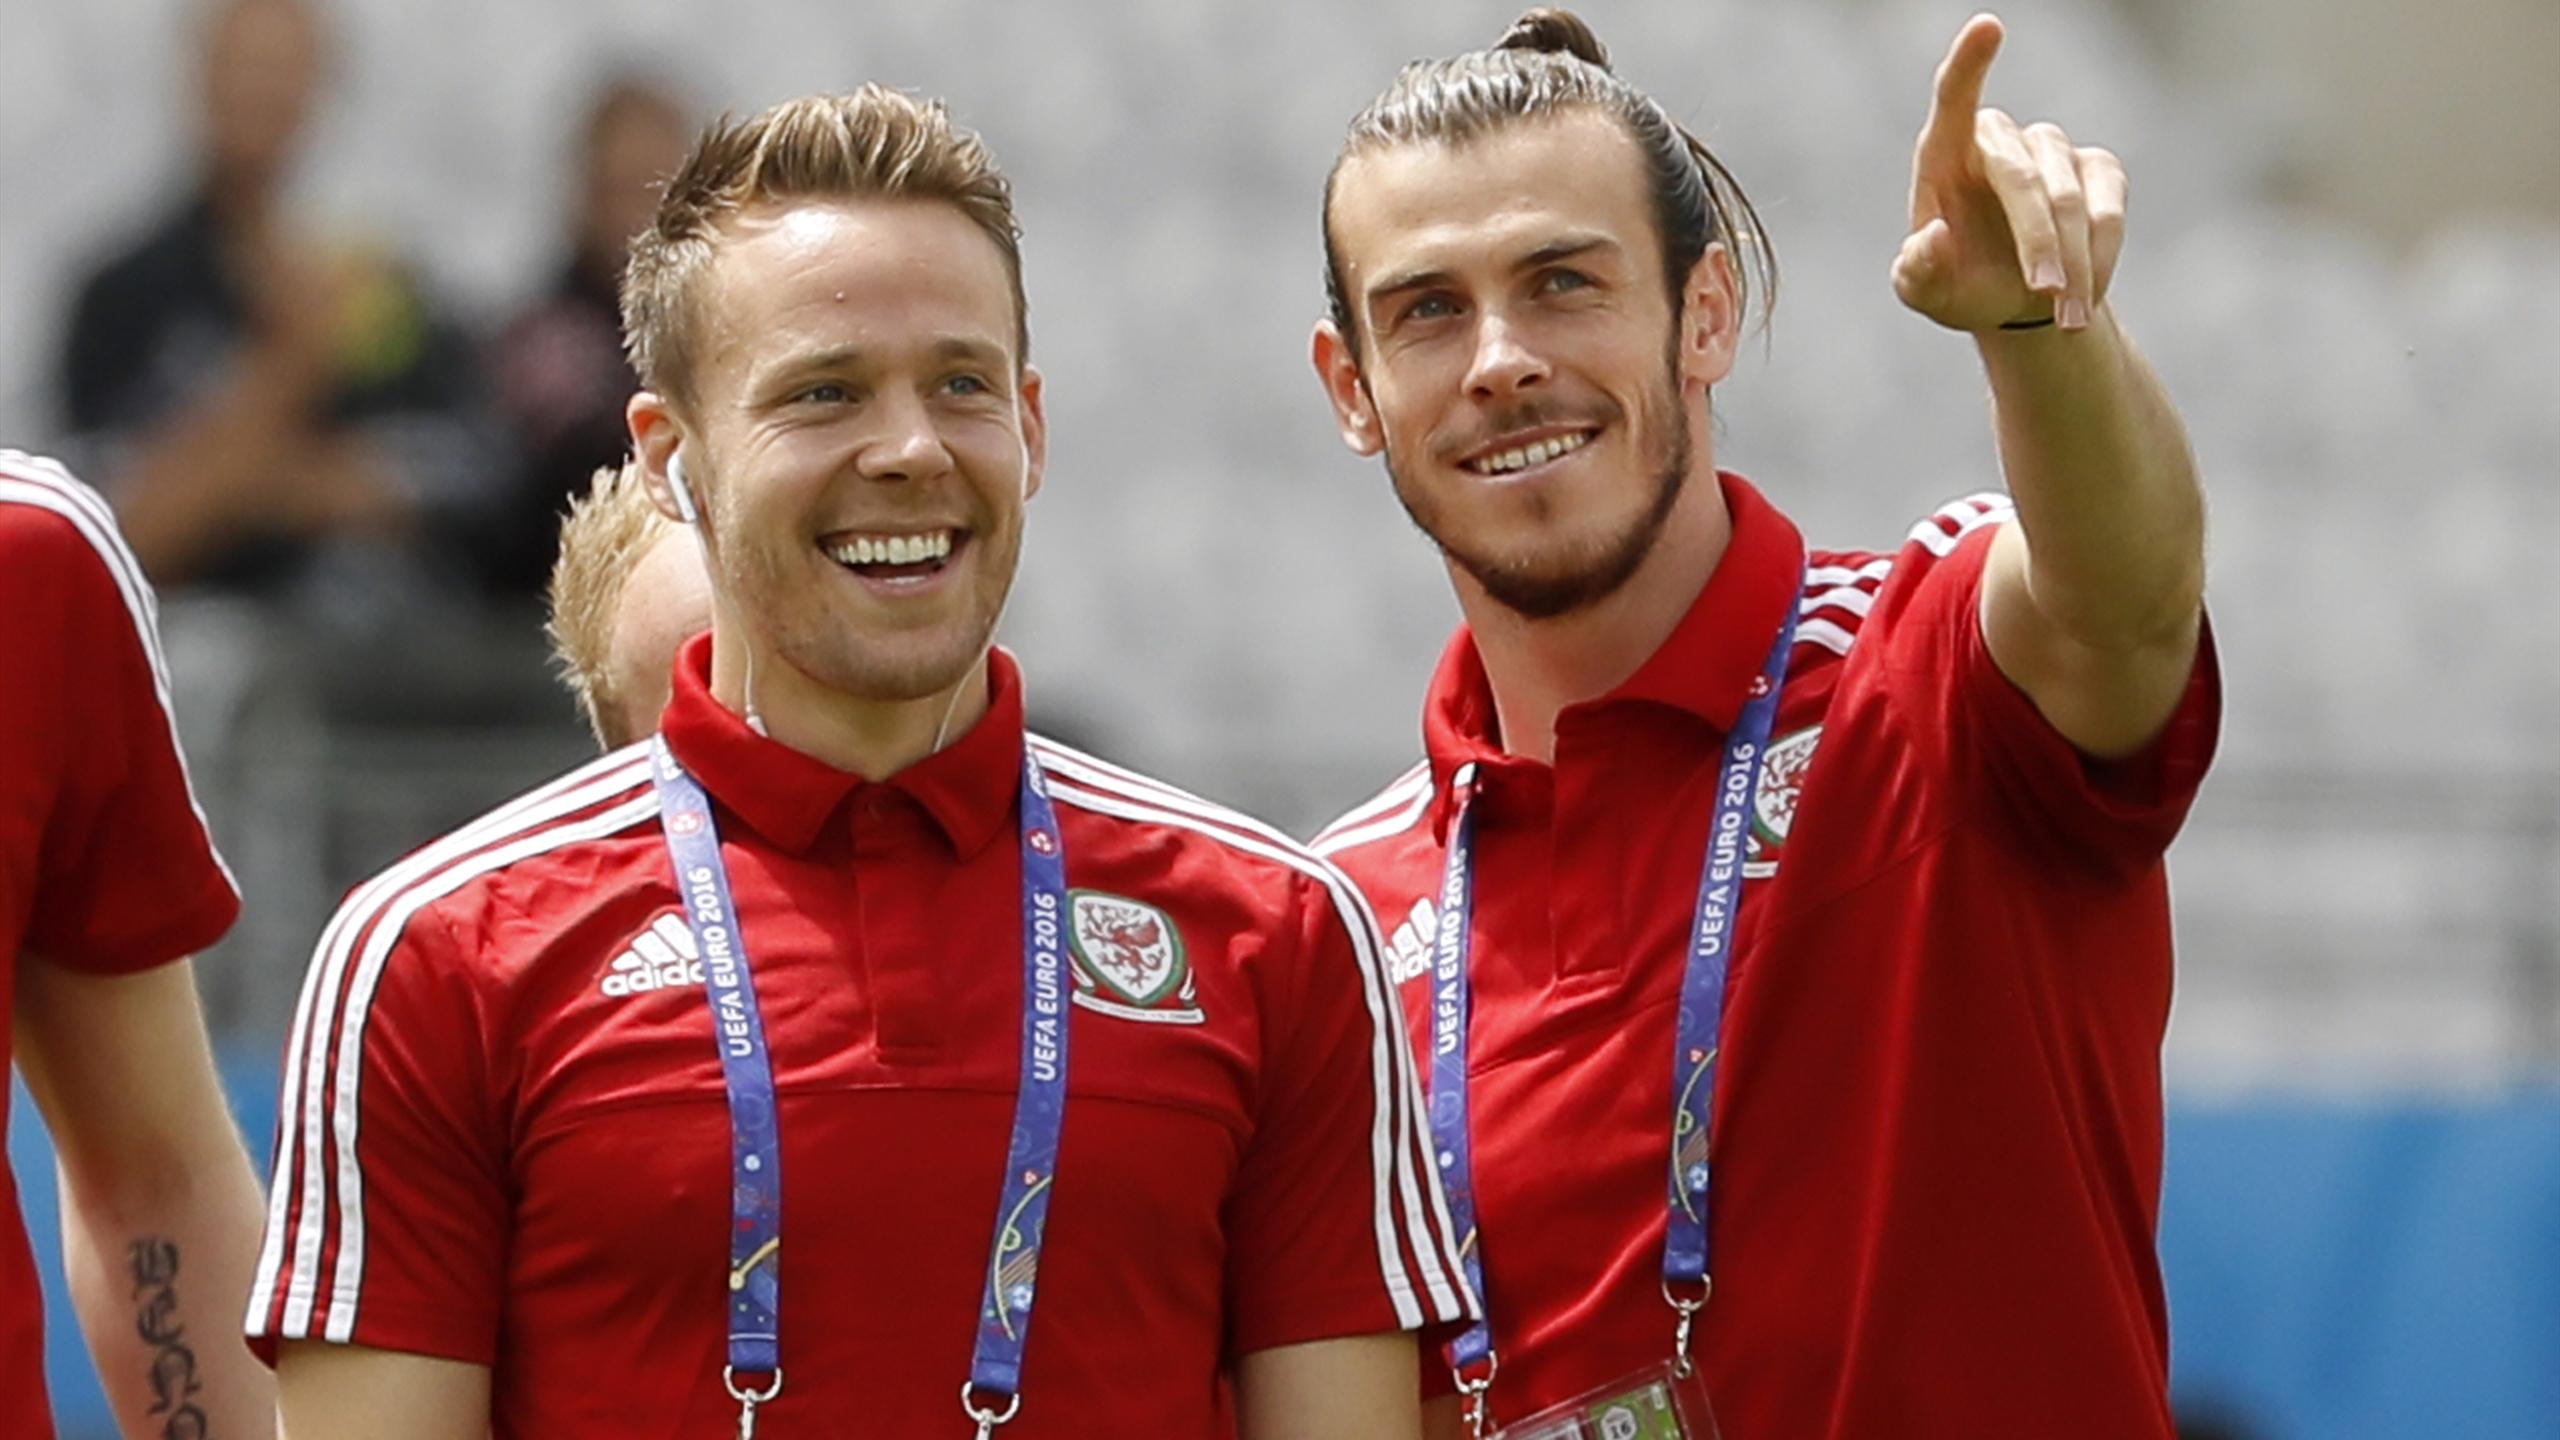 Wales' Chris Gunter and Gareth Bale (R) before the game